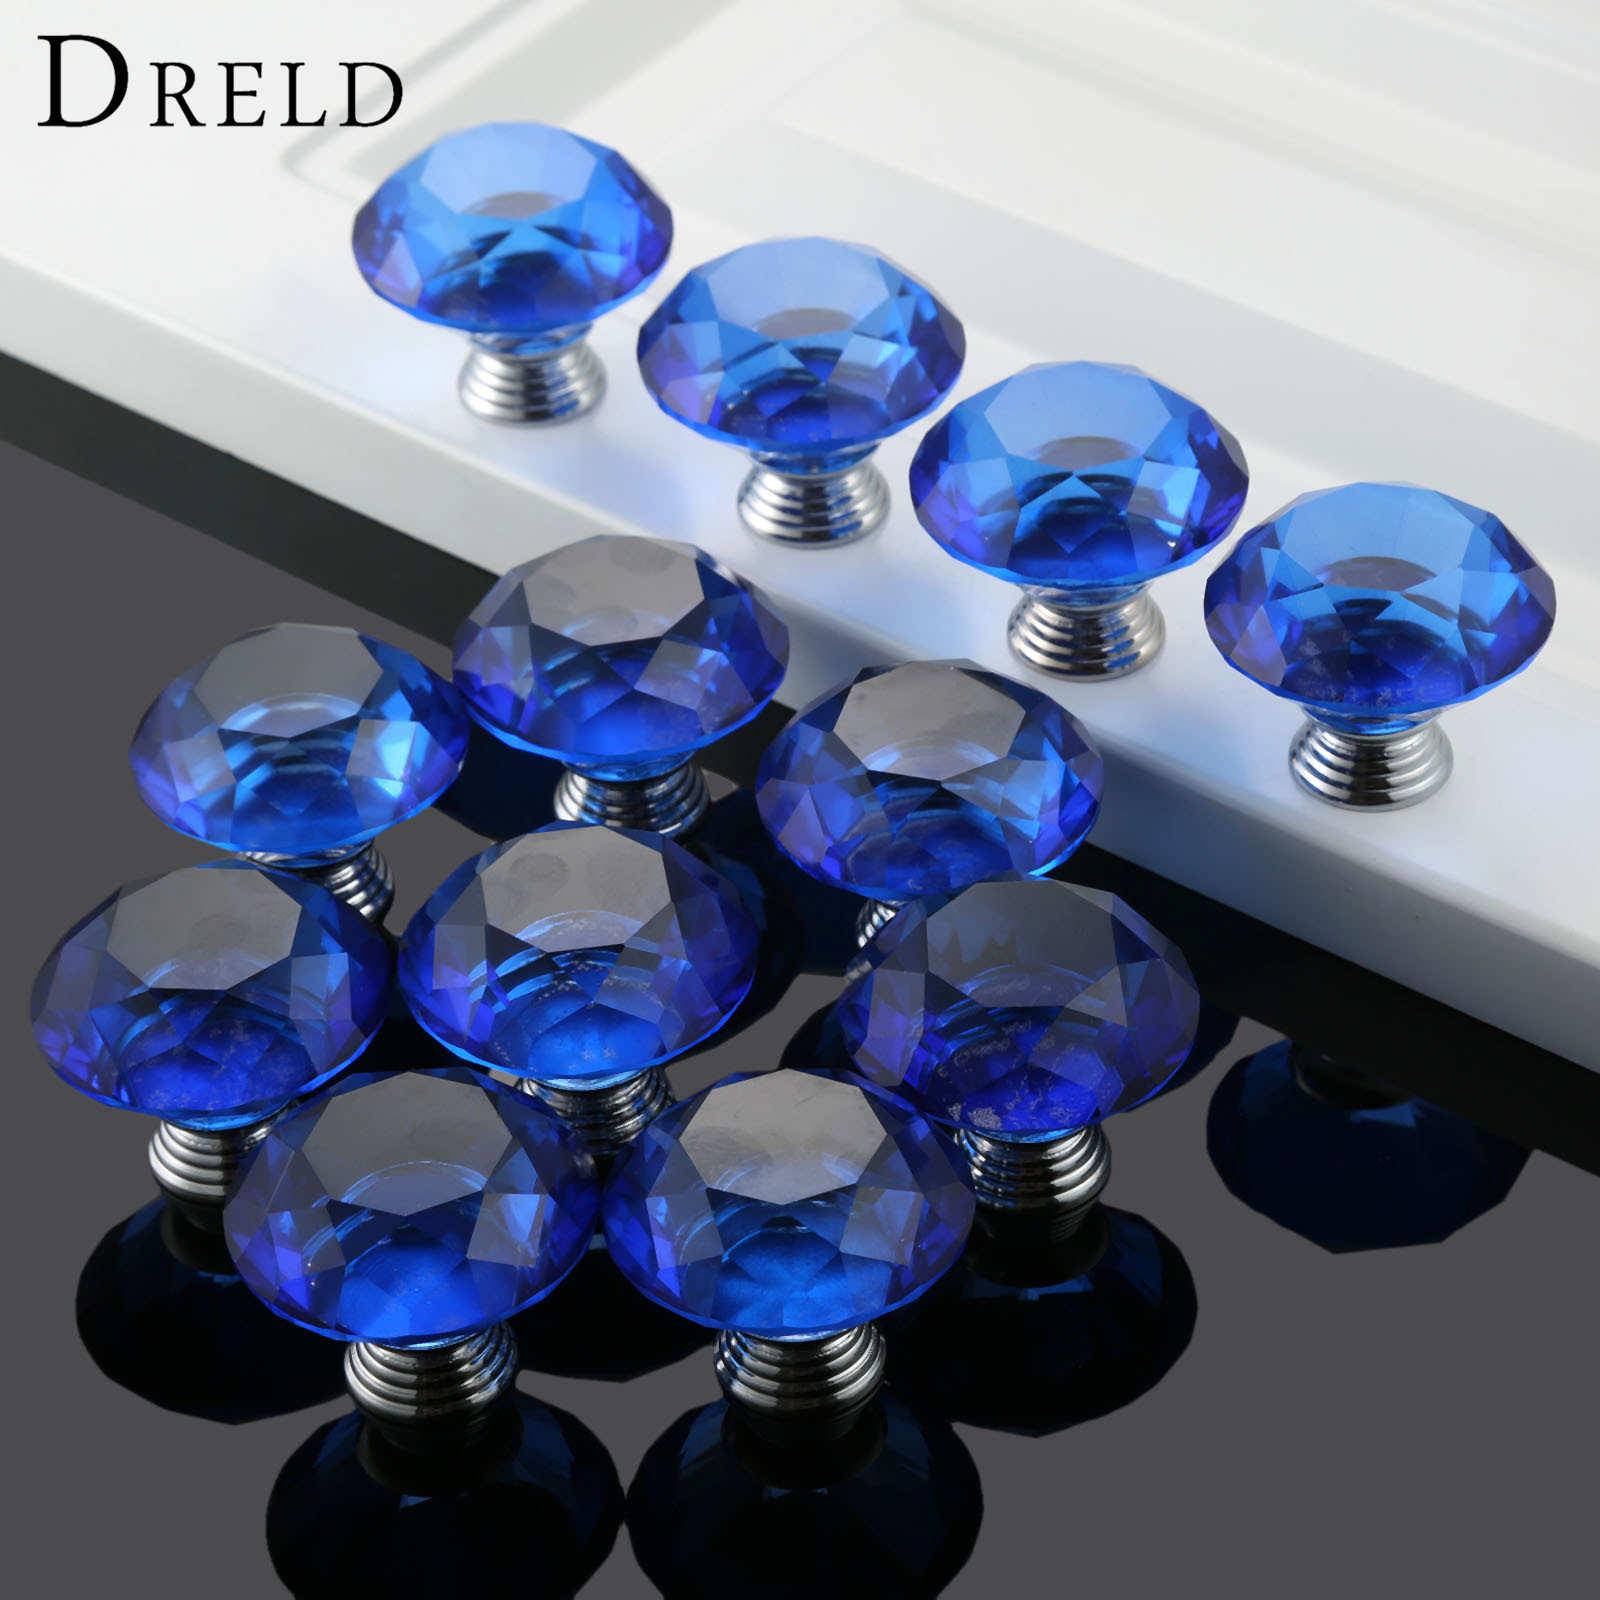 DRELD 12Pcs 40mm Blue Crystal Diamond Glass Pull Drawer Cabinet Knobs and Handles Door Furniture Handles with 22/25/30mm Screws